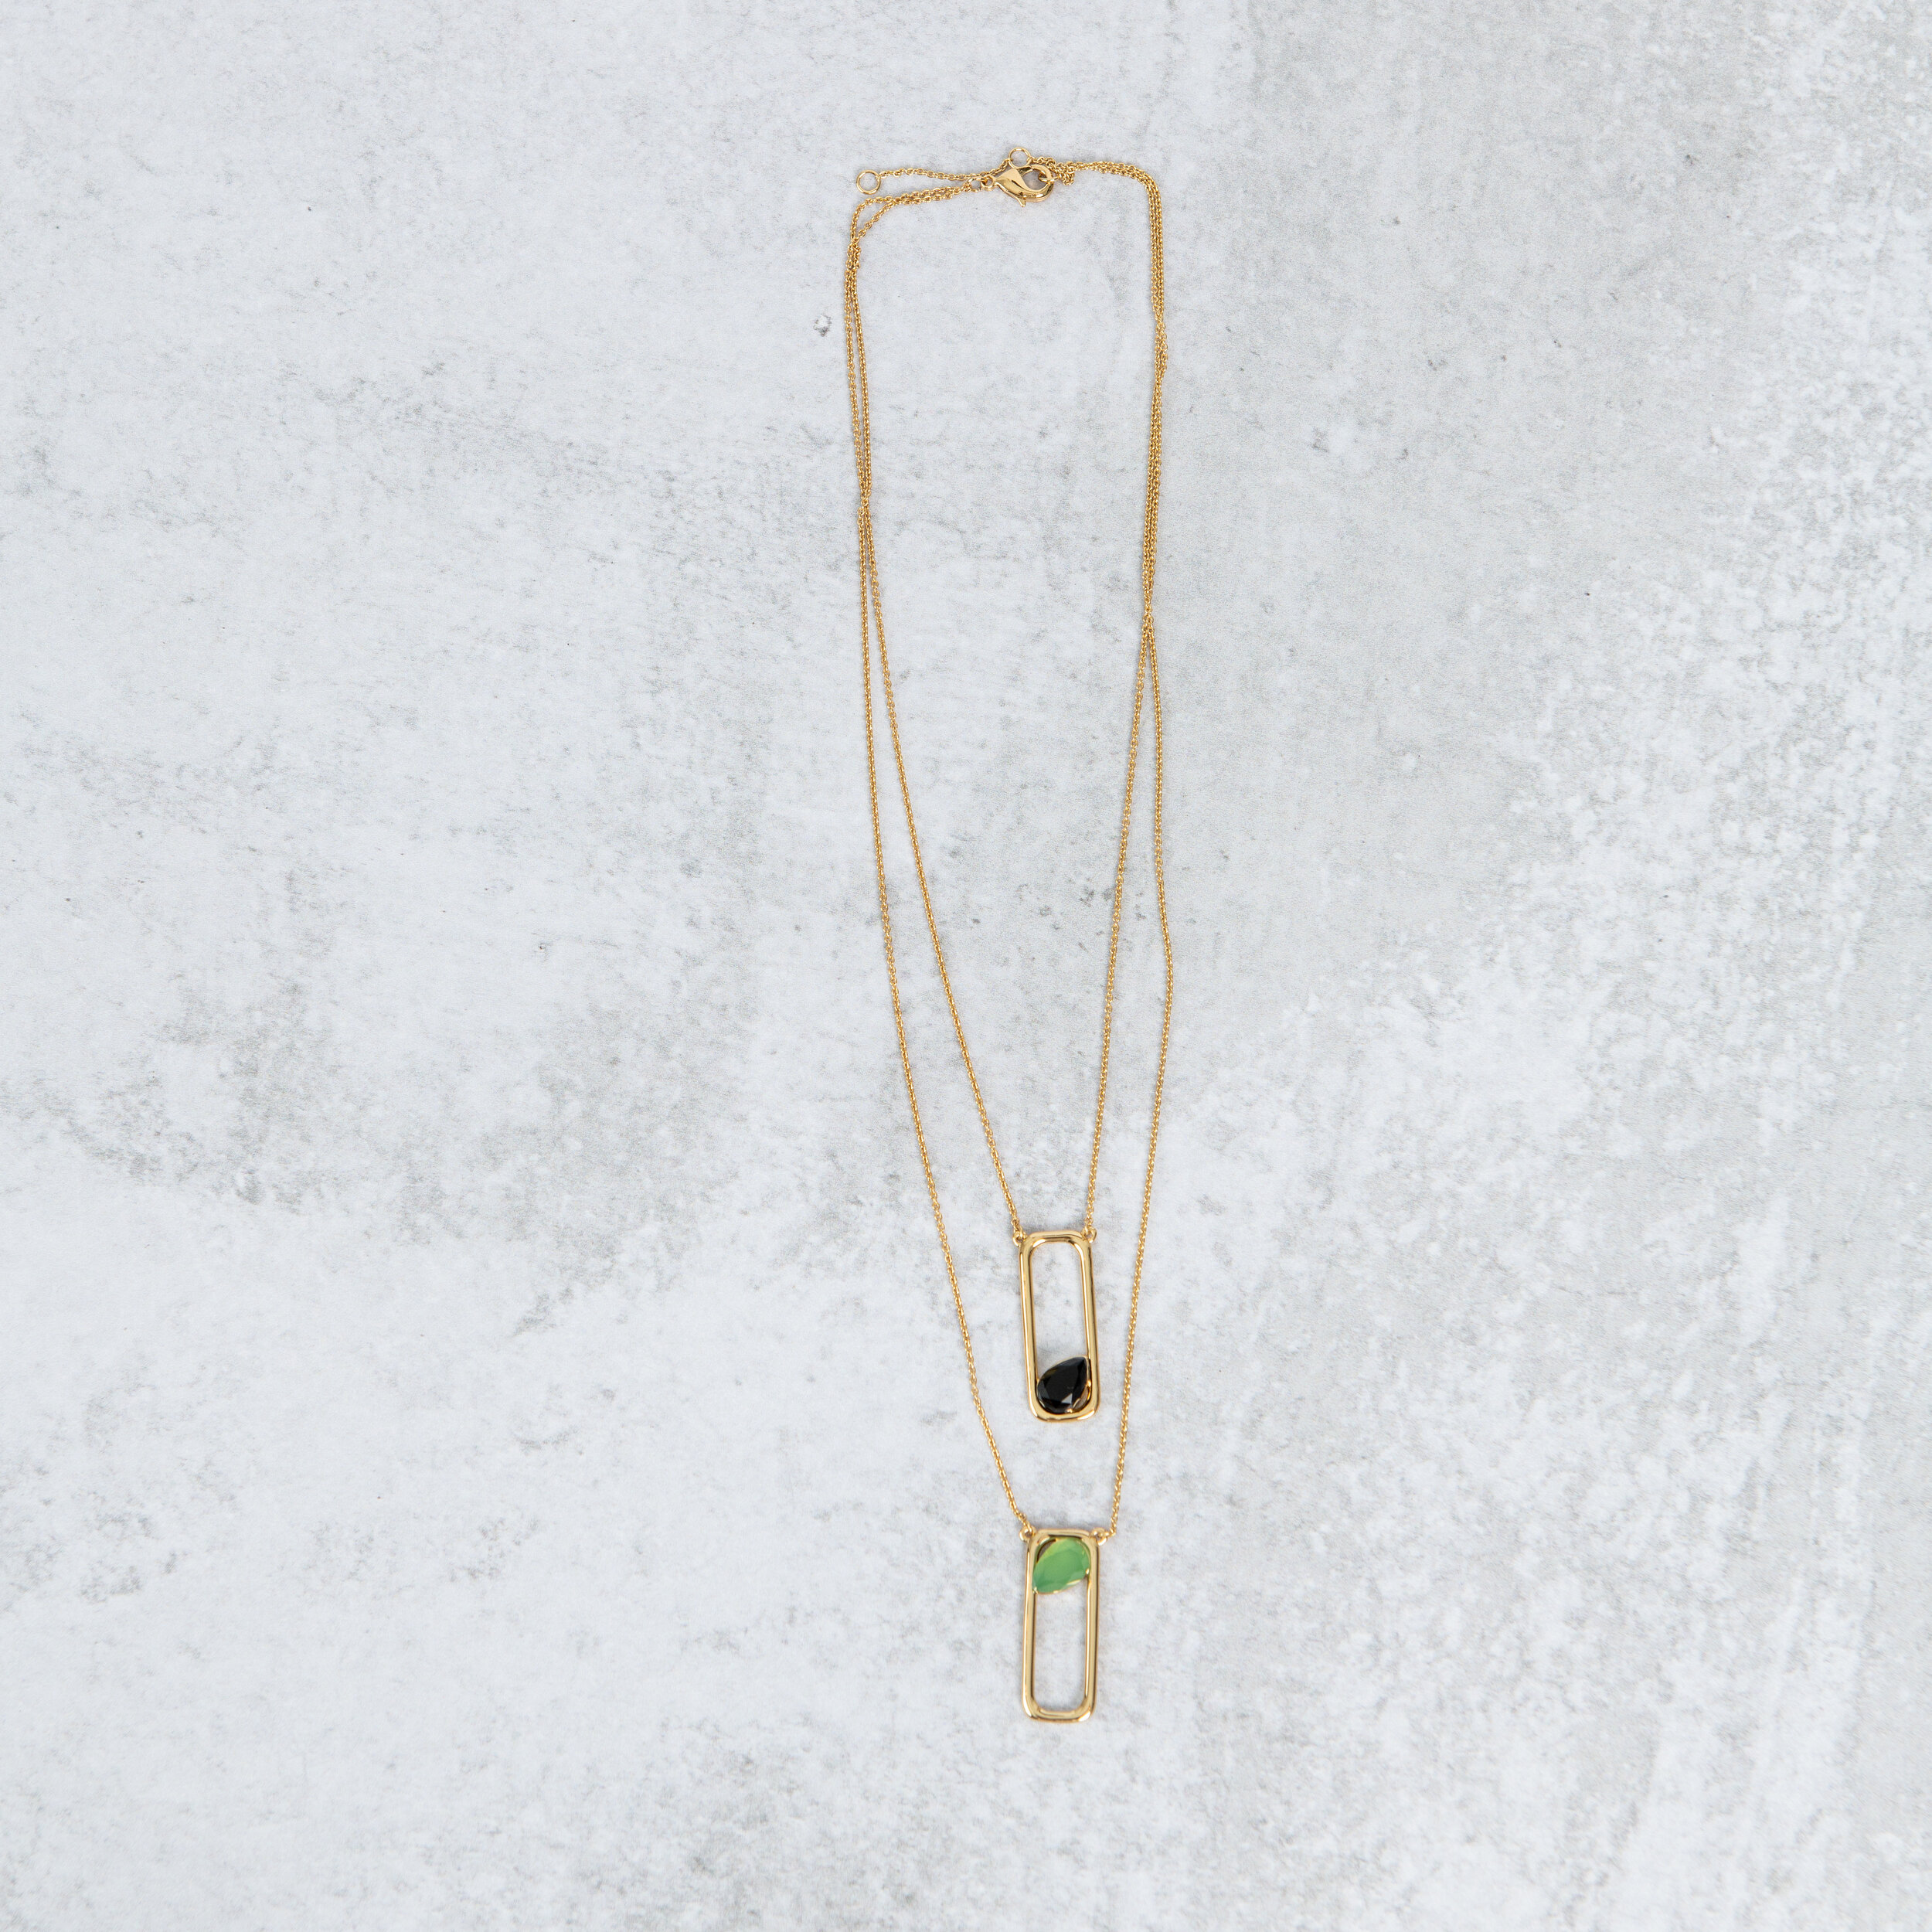 - Layered necklace